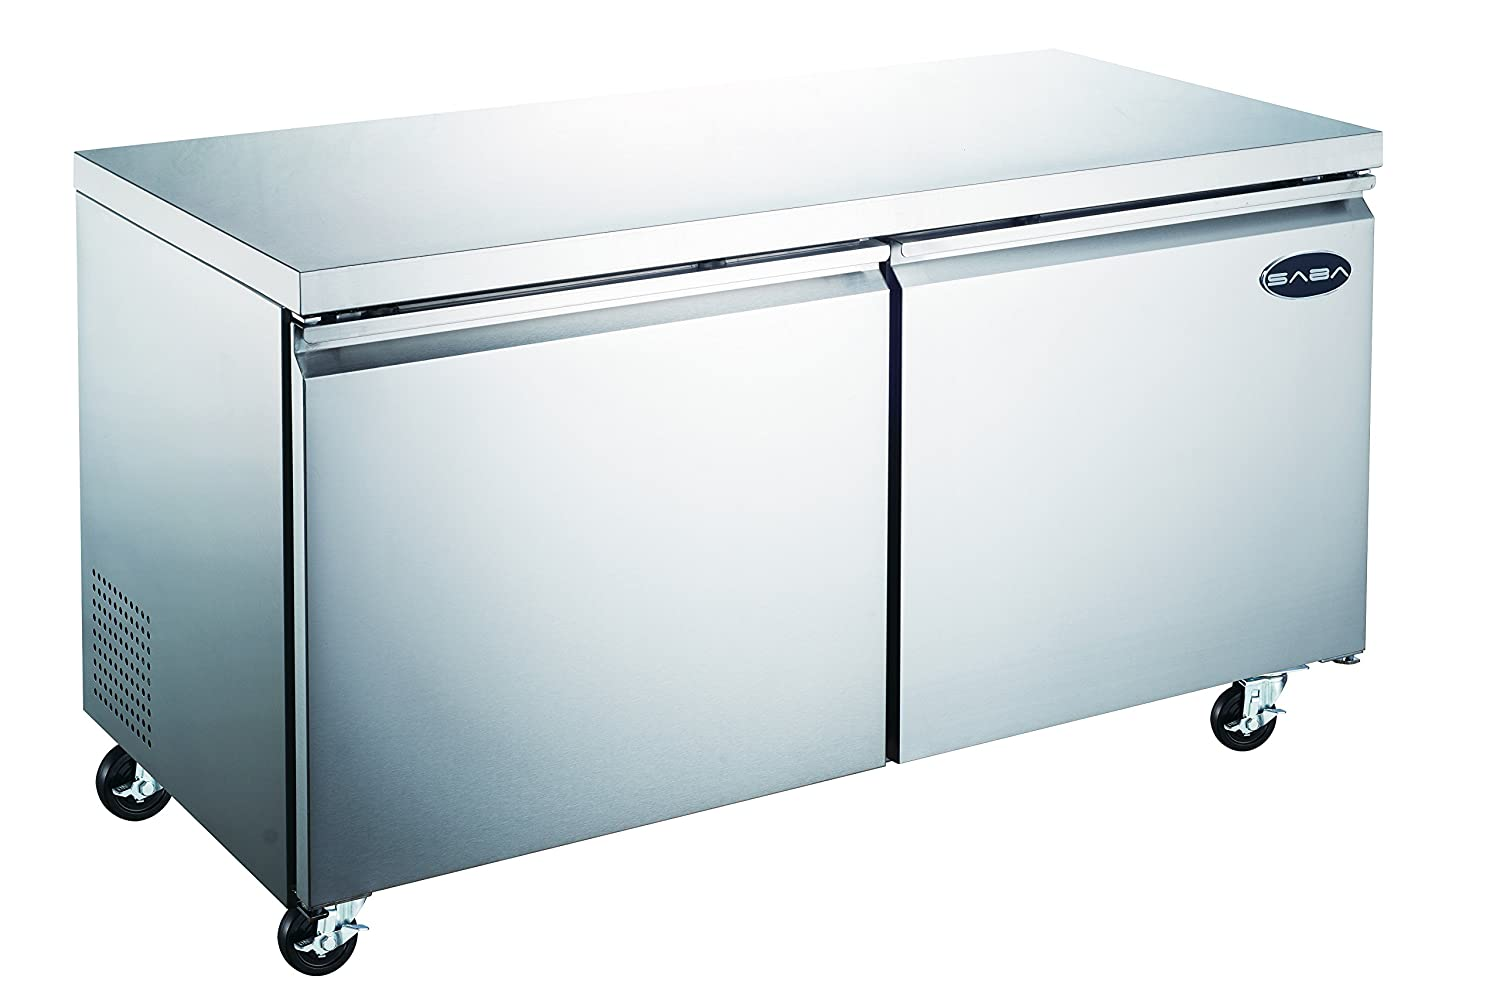 Commercial Under Counter Refrigerator Cooler with 2 Door and 60